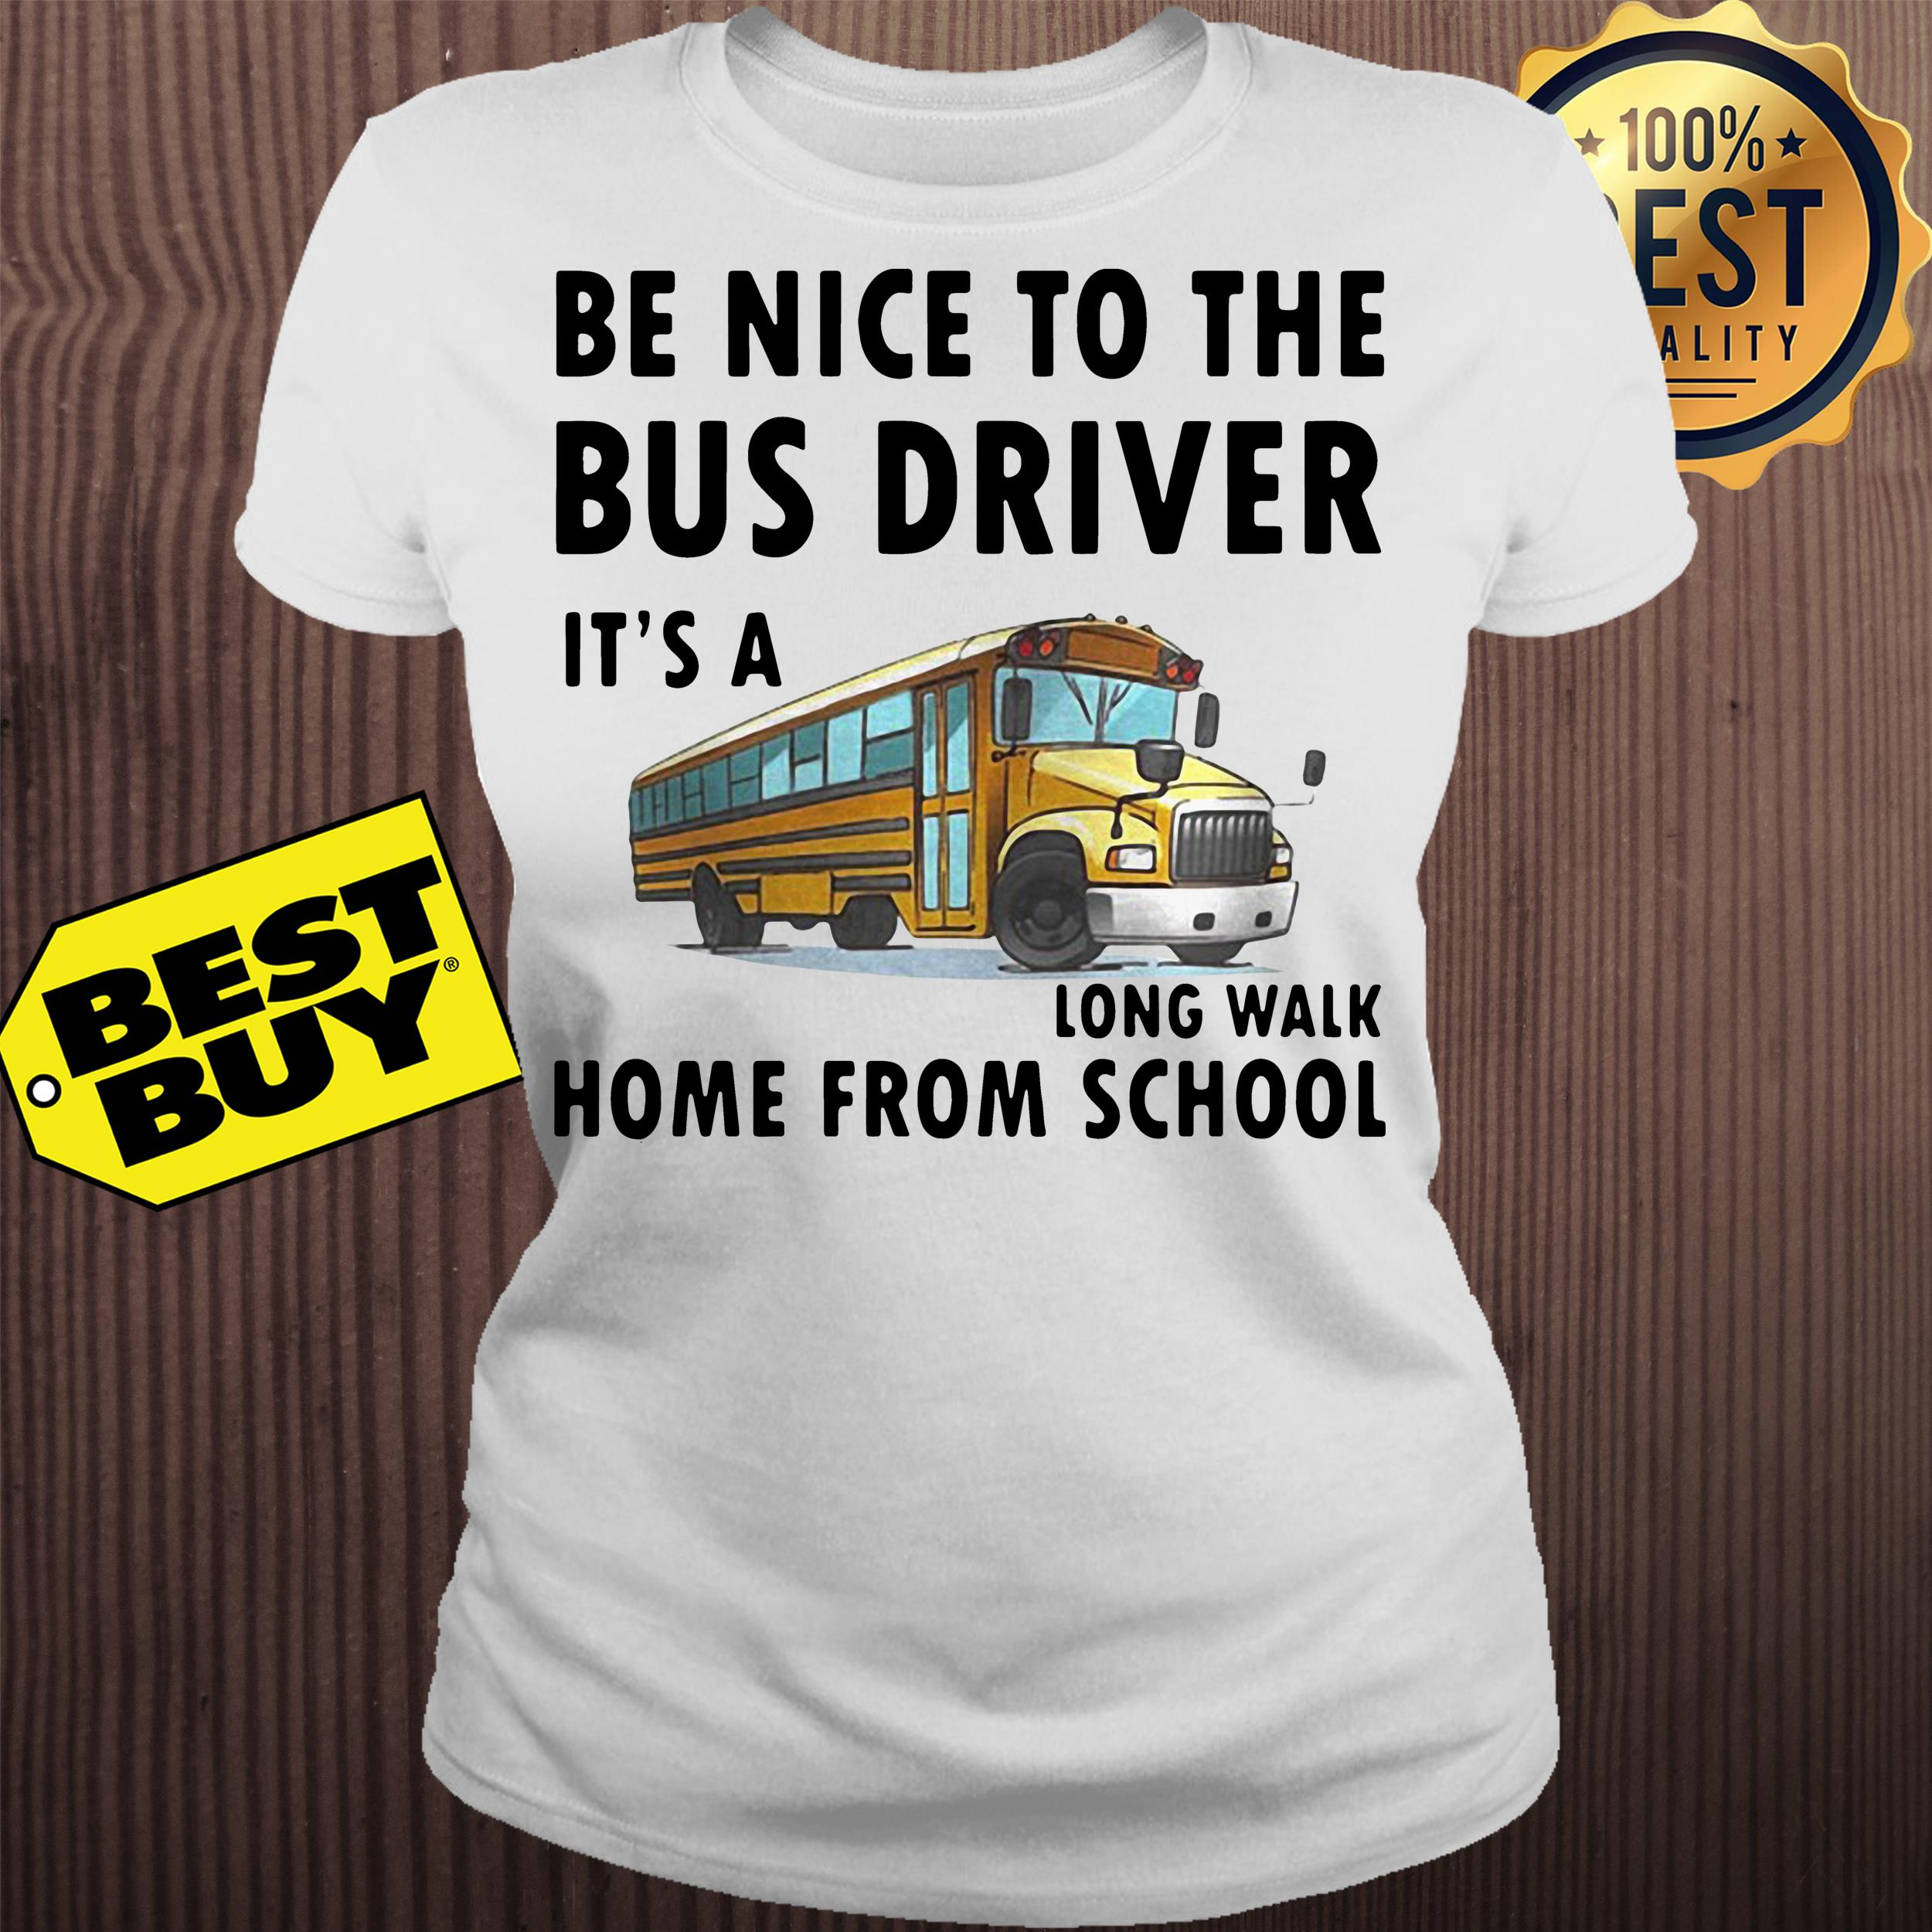 be nice to the bus driver it is a long walk home from school white ladies tee - Be Nice To The Bus Driver It Is A Long Walk Home From School White shirt